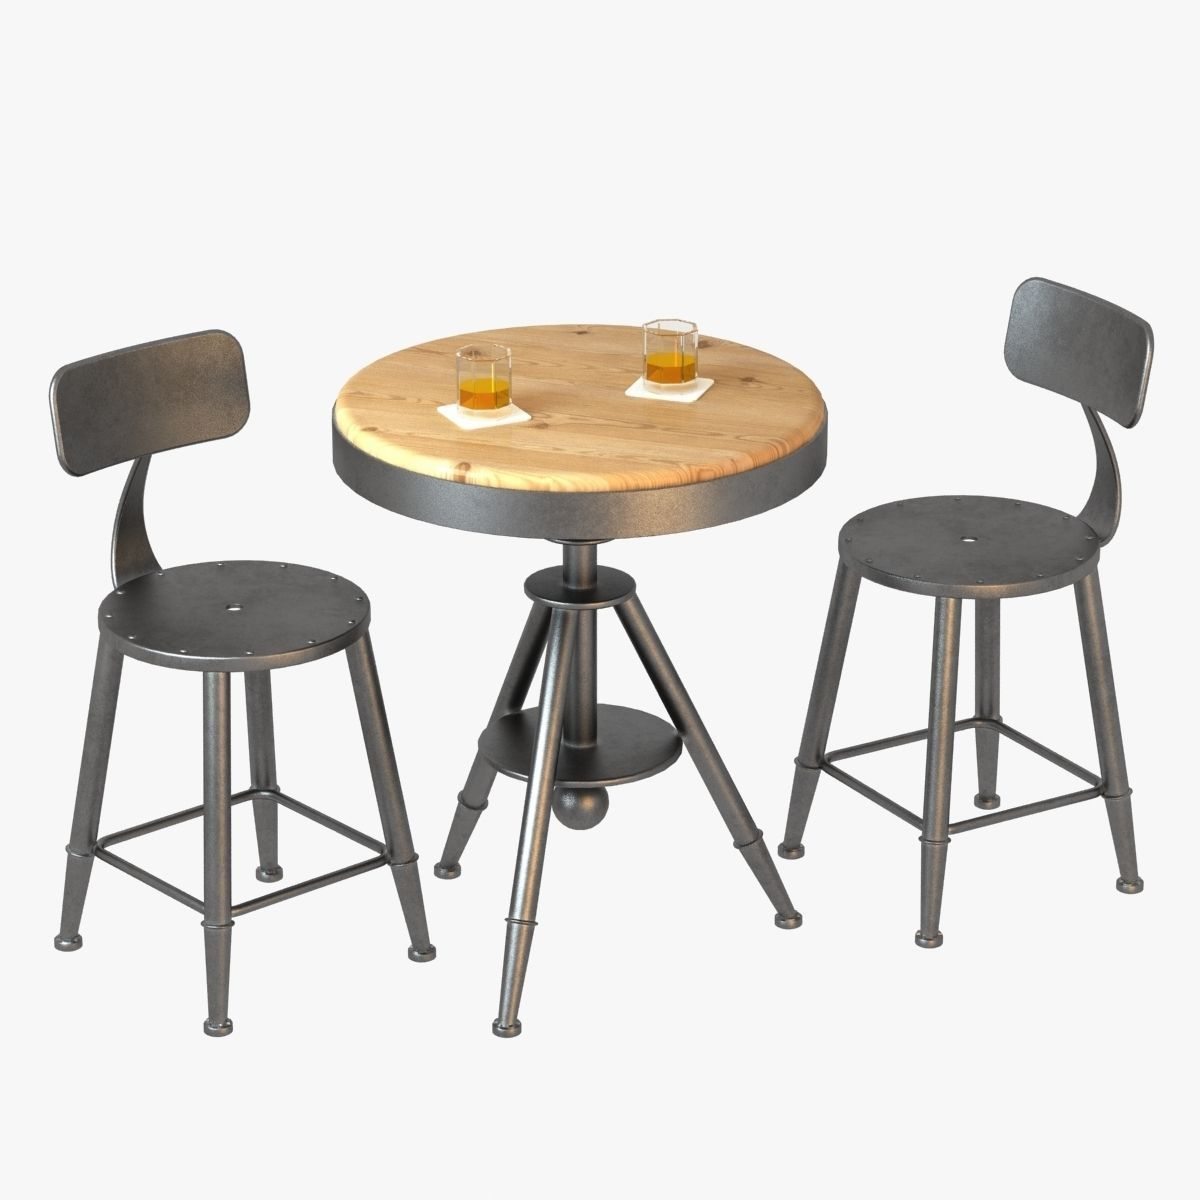 Loft Style Bar Chairs And Table 3d Model Max Obj 3ds Fbx Mtl 1 ...